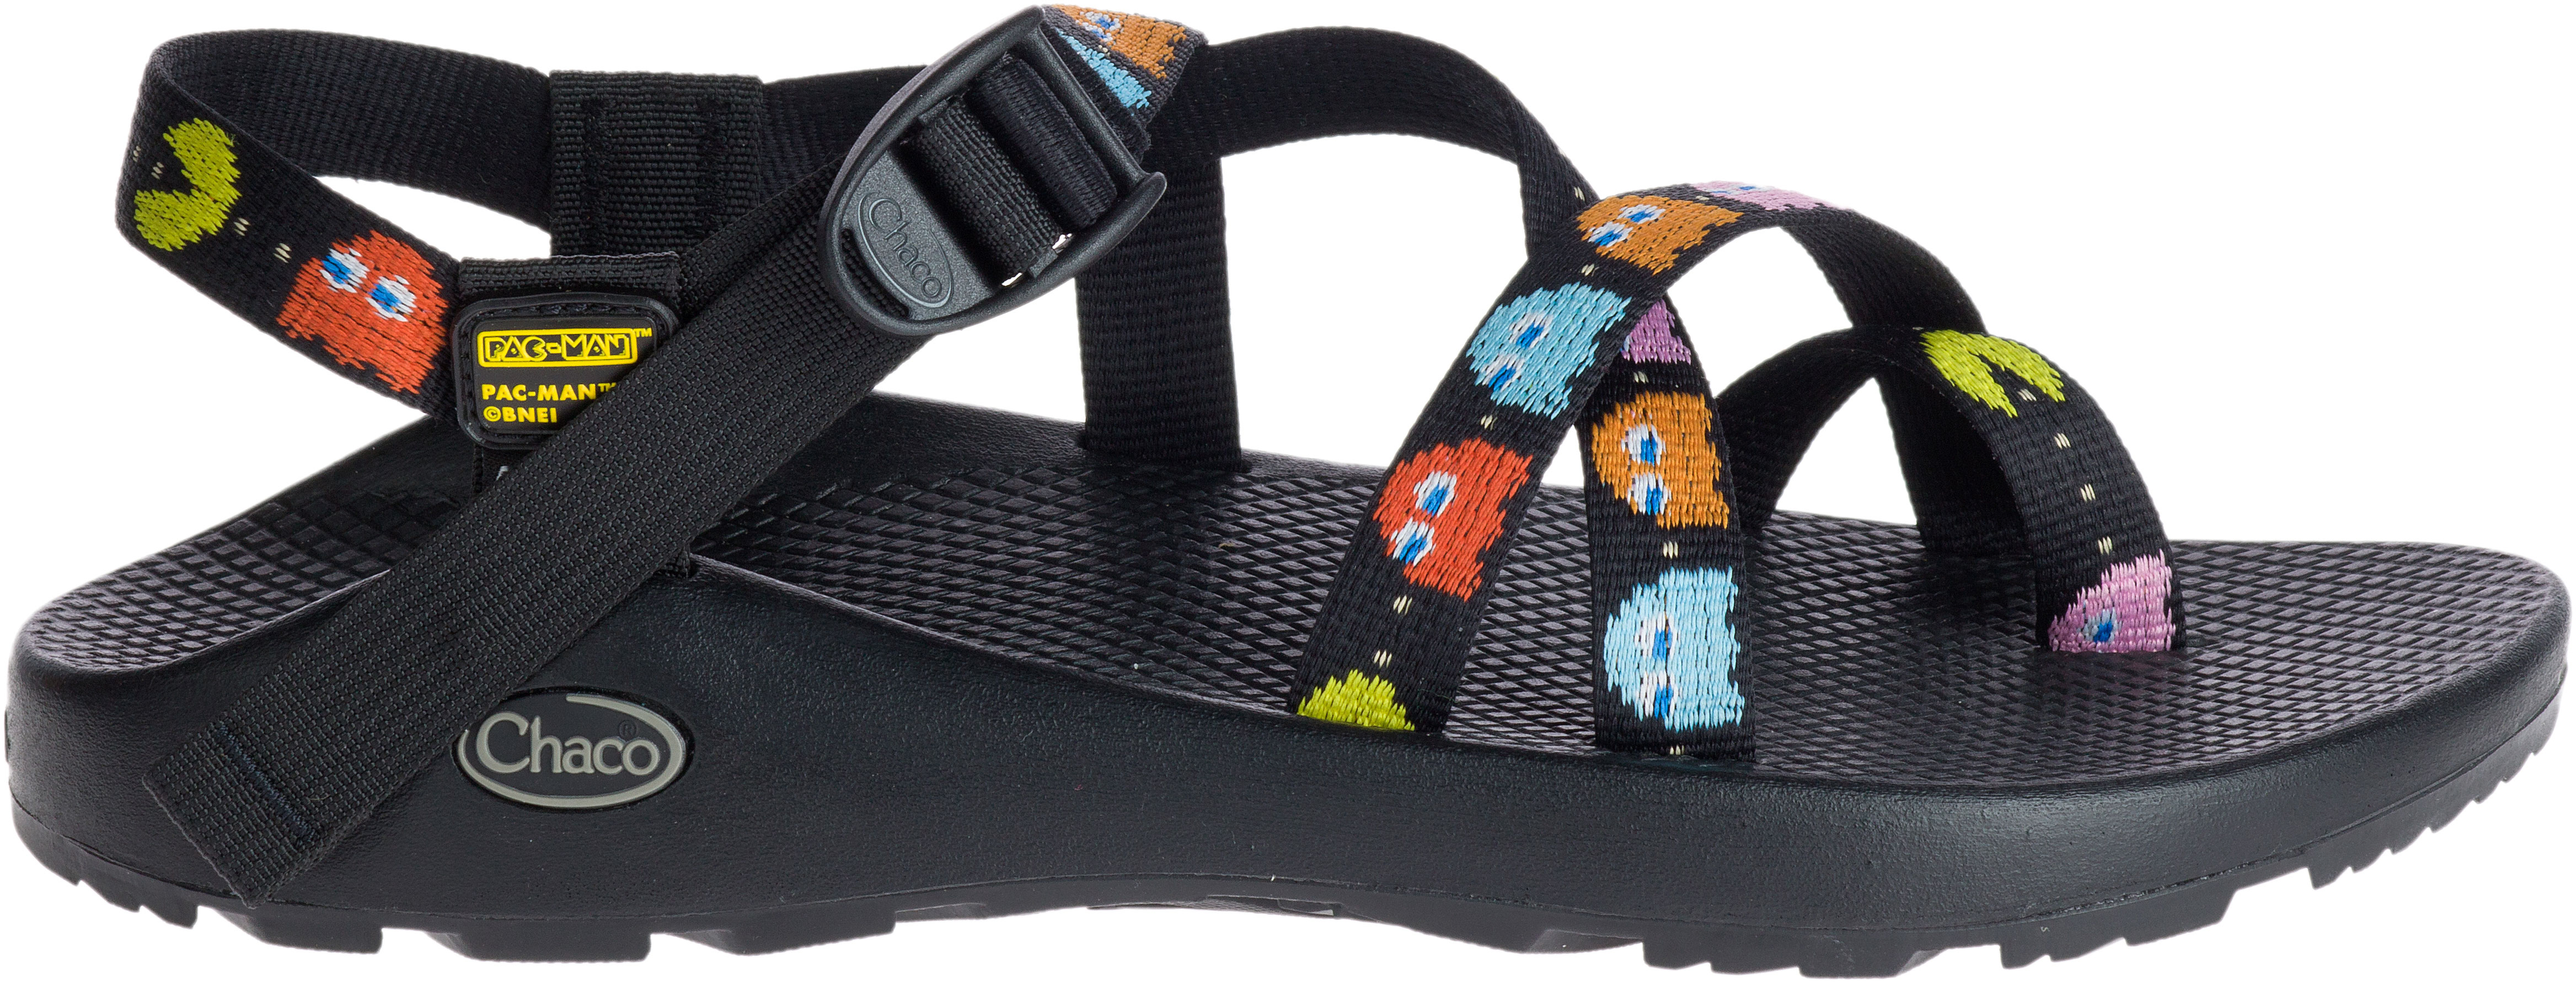 Pac Man Sandals Chaco Launches 80s Arcade Classic